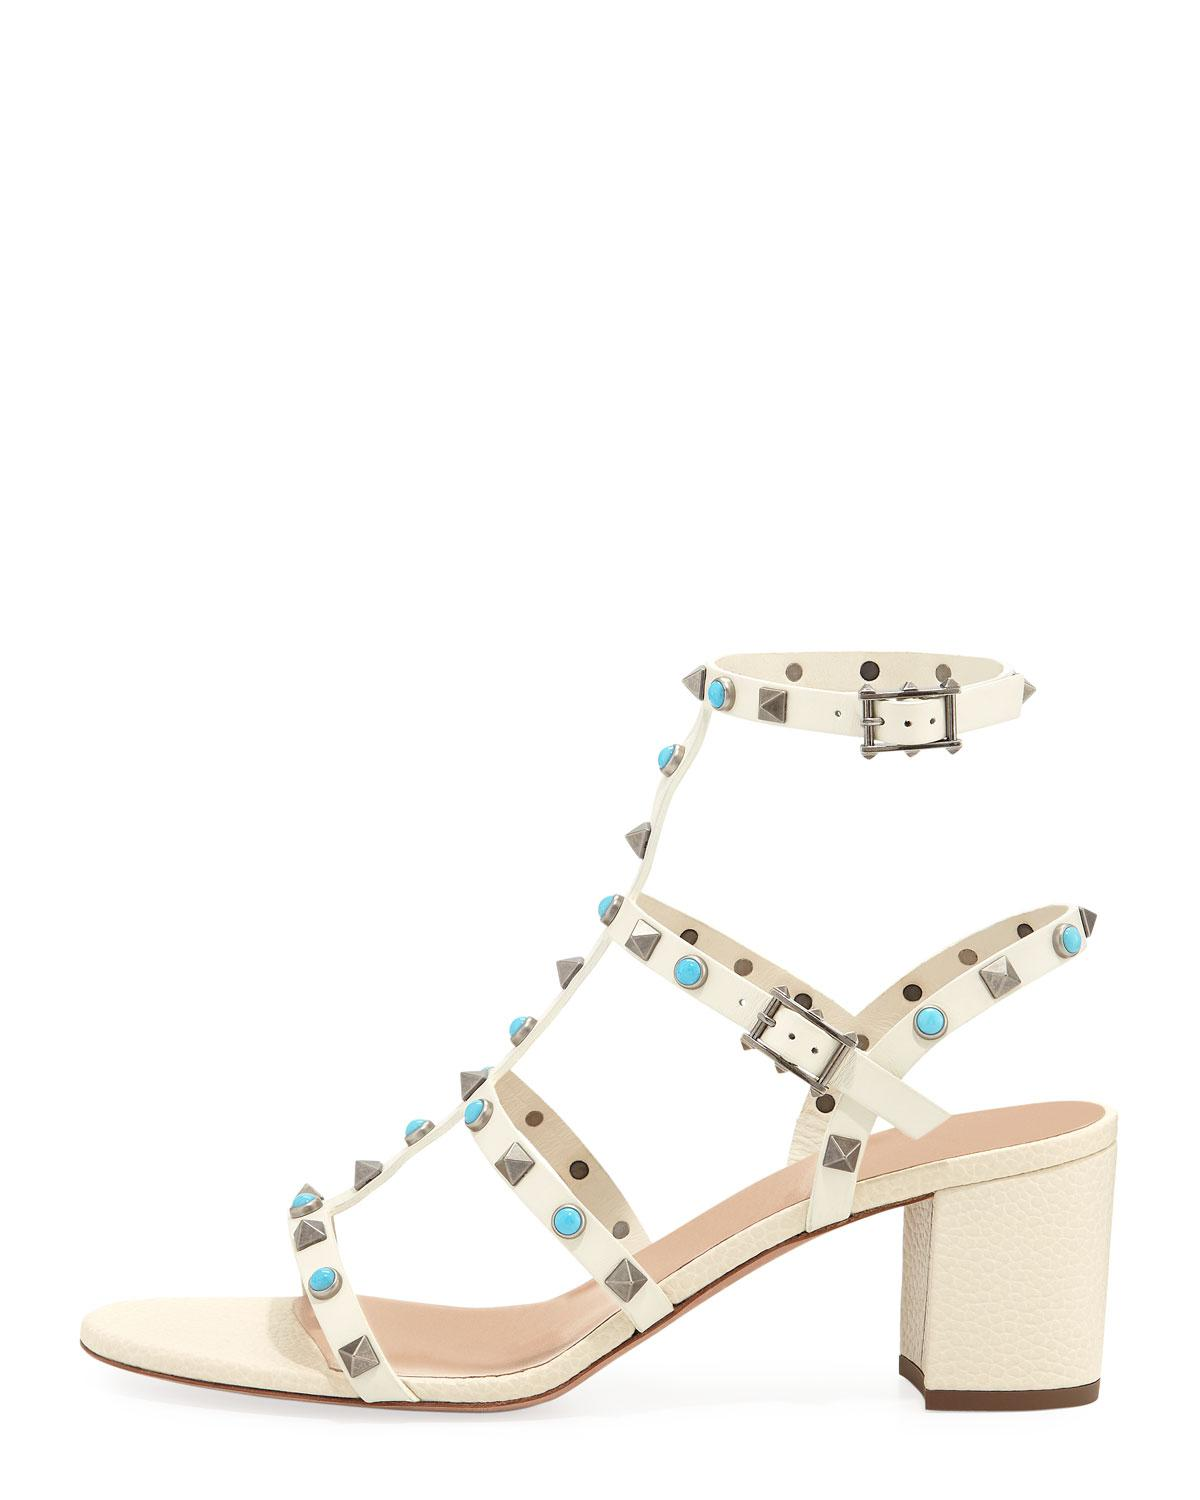 f3742b8564 Lyst - Valentino Multi-studded Leather Sandals in Natural